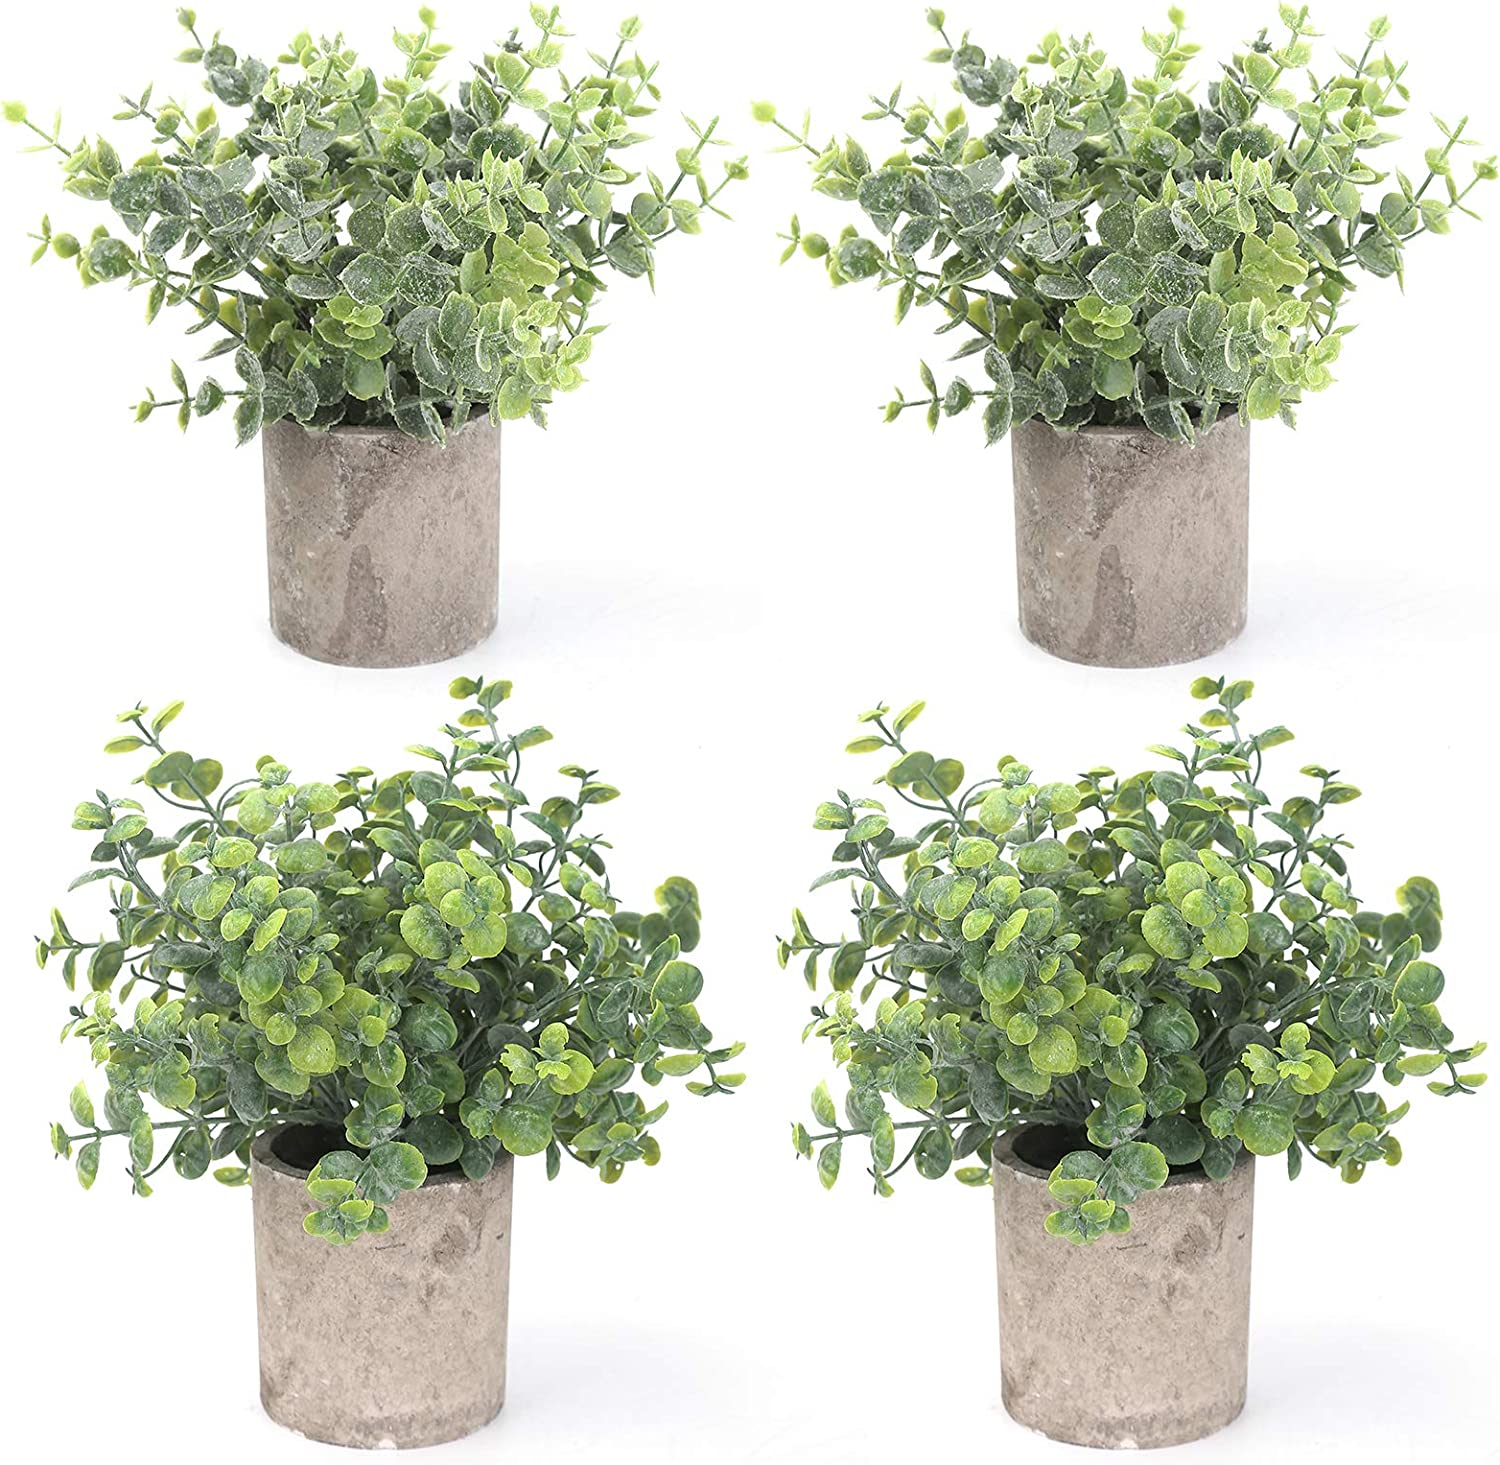 BOMAROLAN 4 Pcs Mini Potted Plastic Artificial Green Plants, Fake Topiary Shrubs Fake Plant, Small Faux Greenery, for Bathroom Home Office Desk Decorations (Eucalyptus Leaves)